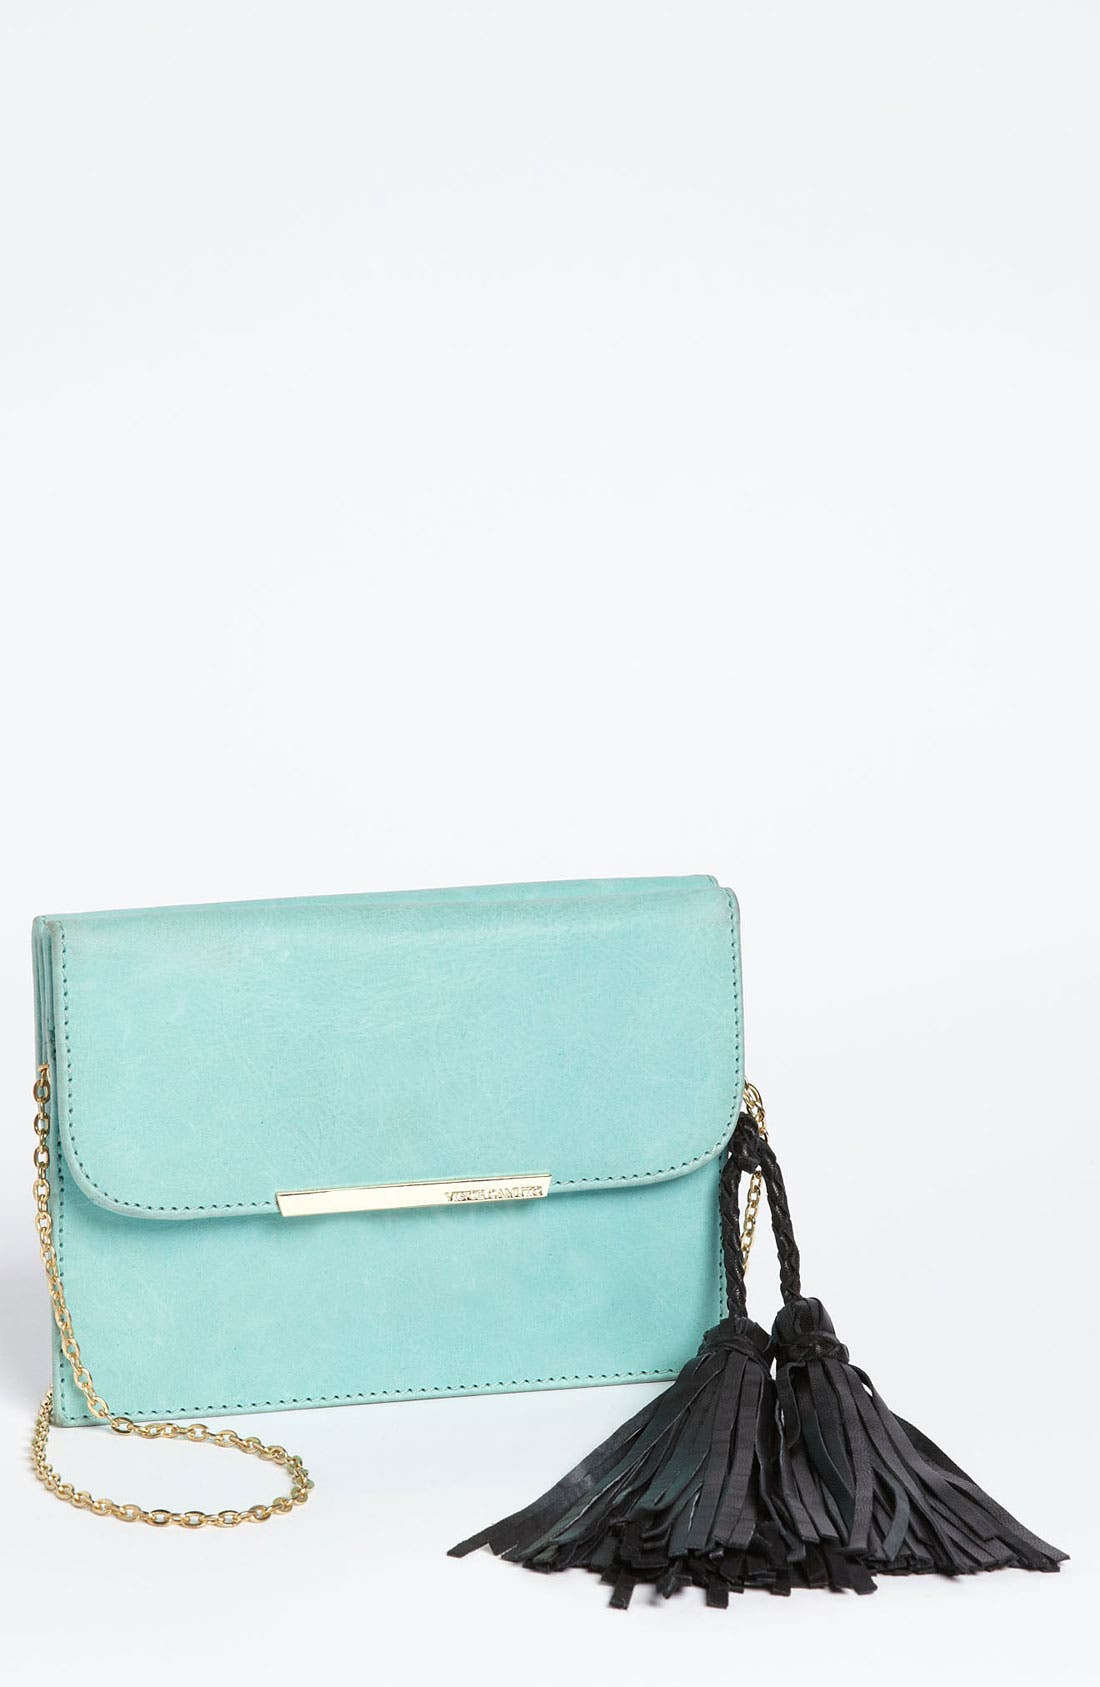 Alternate Image 1 Selected - Vince Camuto 'Vany' Crossbody Bag